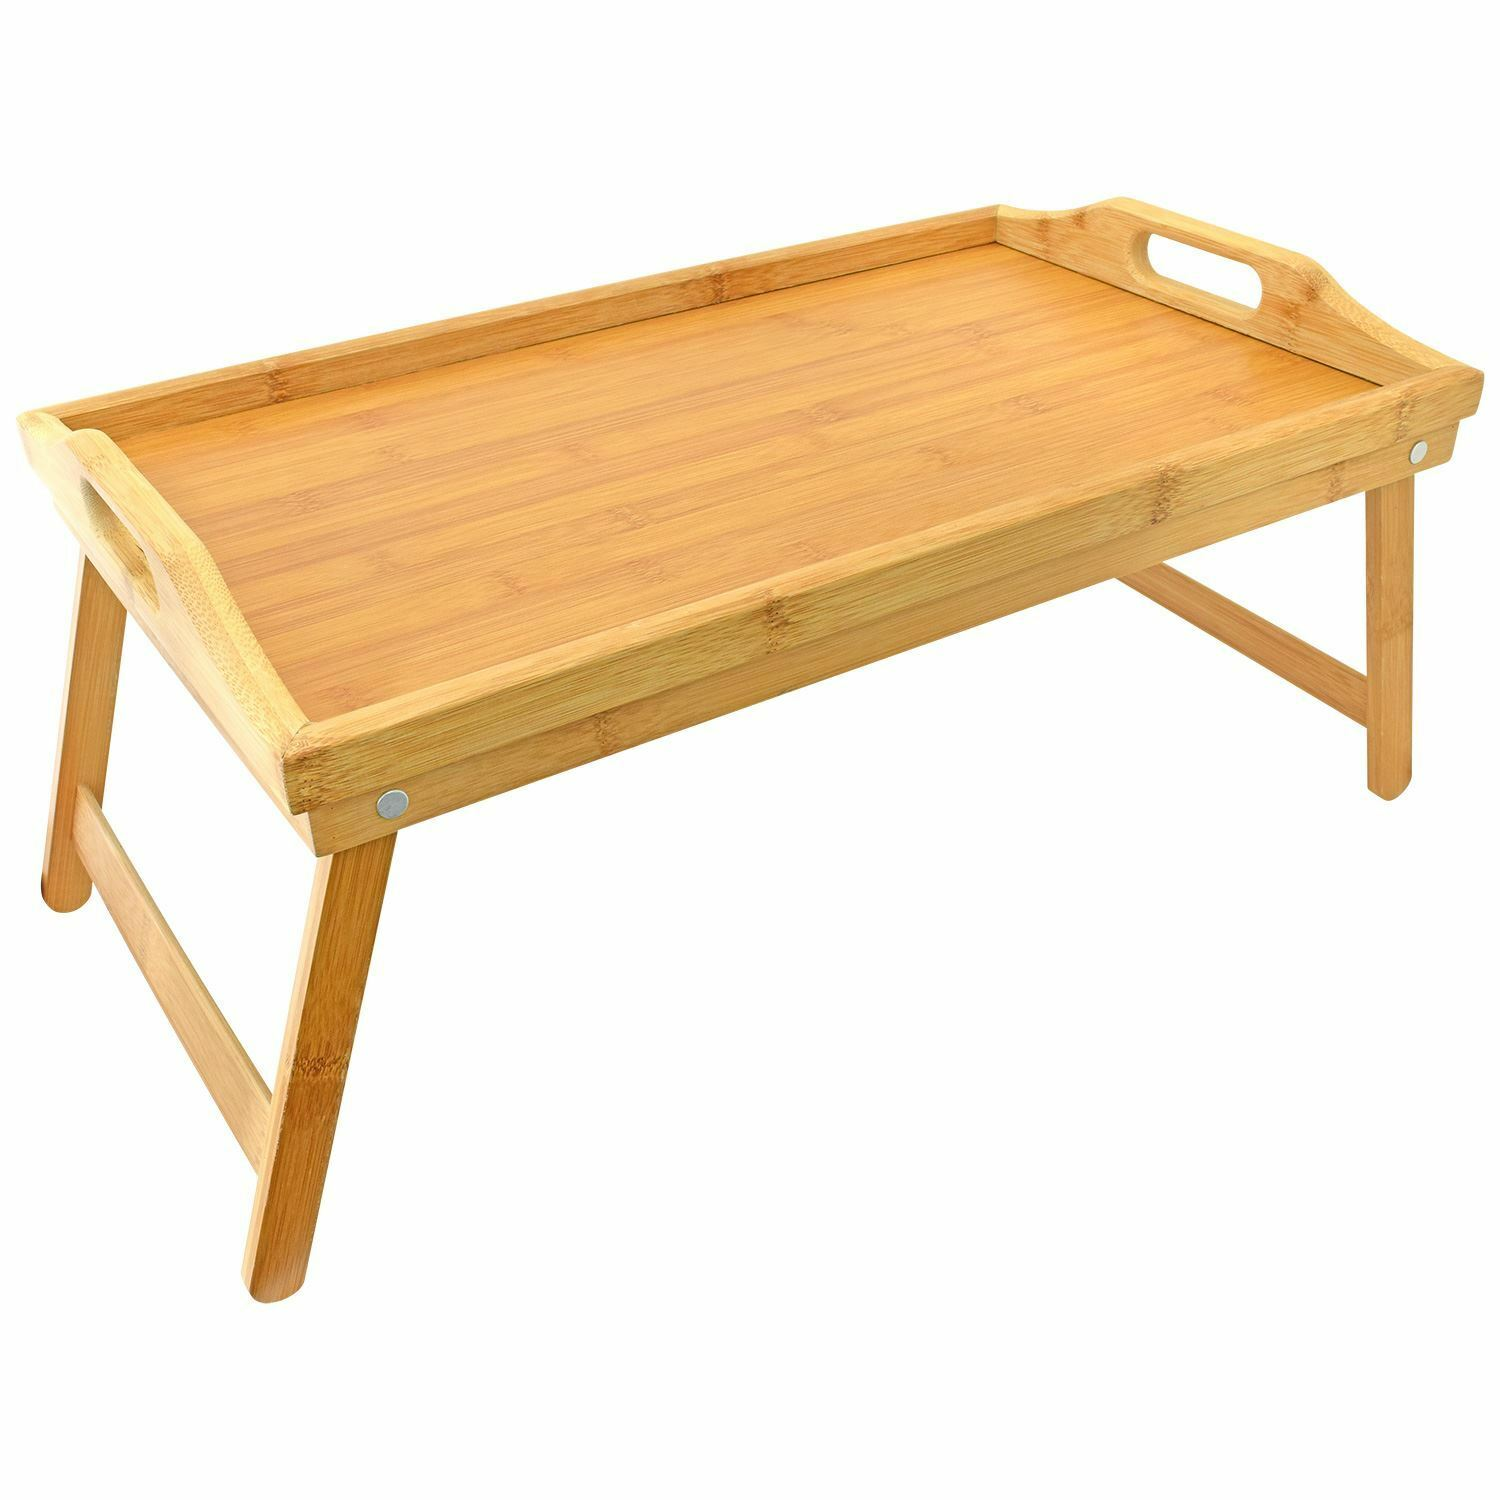 Folding Bed Tray Bamboo Wooden Breakfast Dinner In Bed  : Folding Bed Tray Bamboo Wooden Breakfast Dinner In from picclick.co.uk size 1500 x 1500 jpeg 114kB